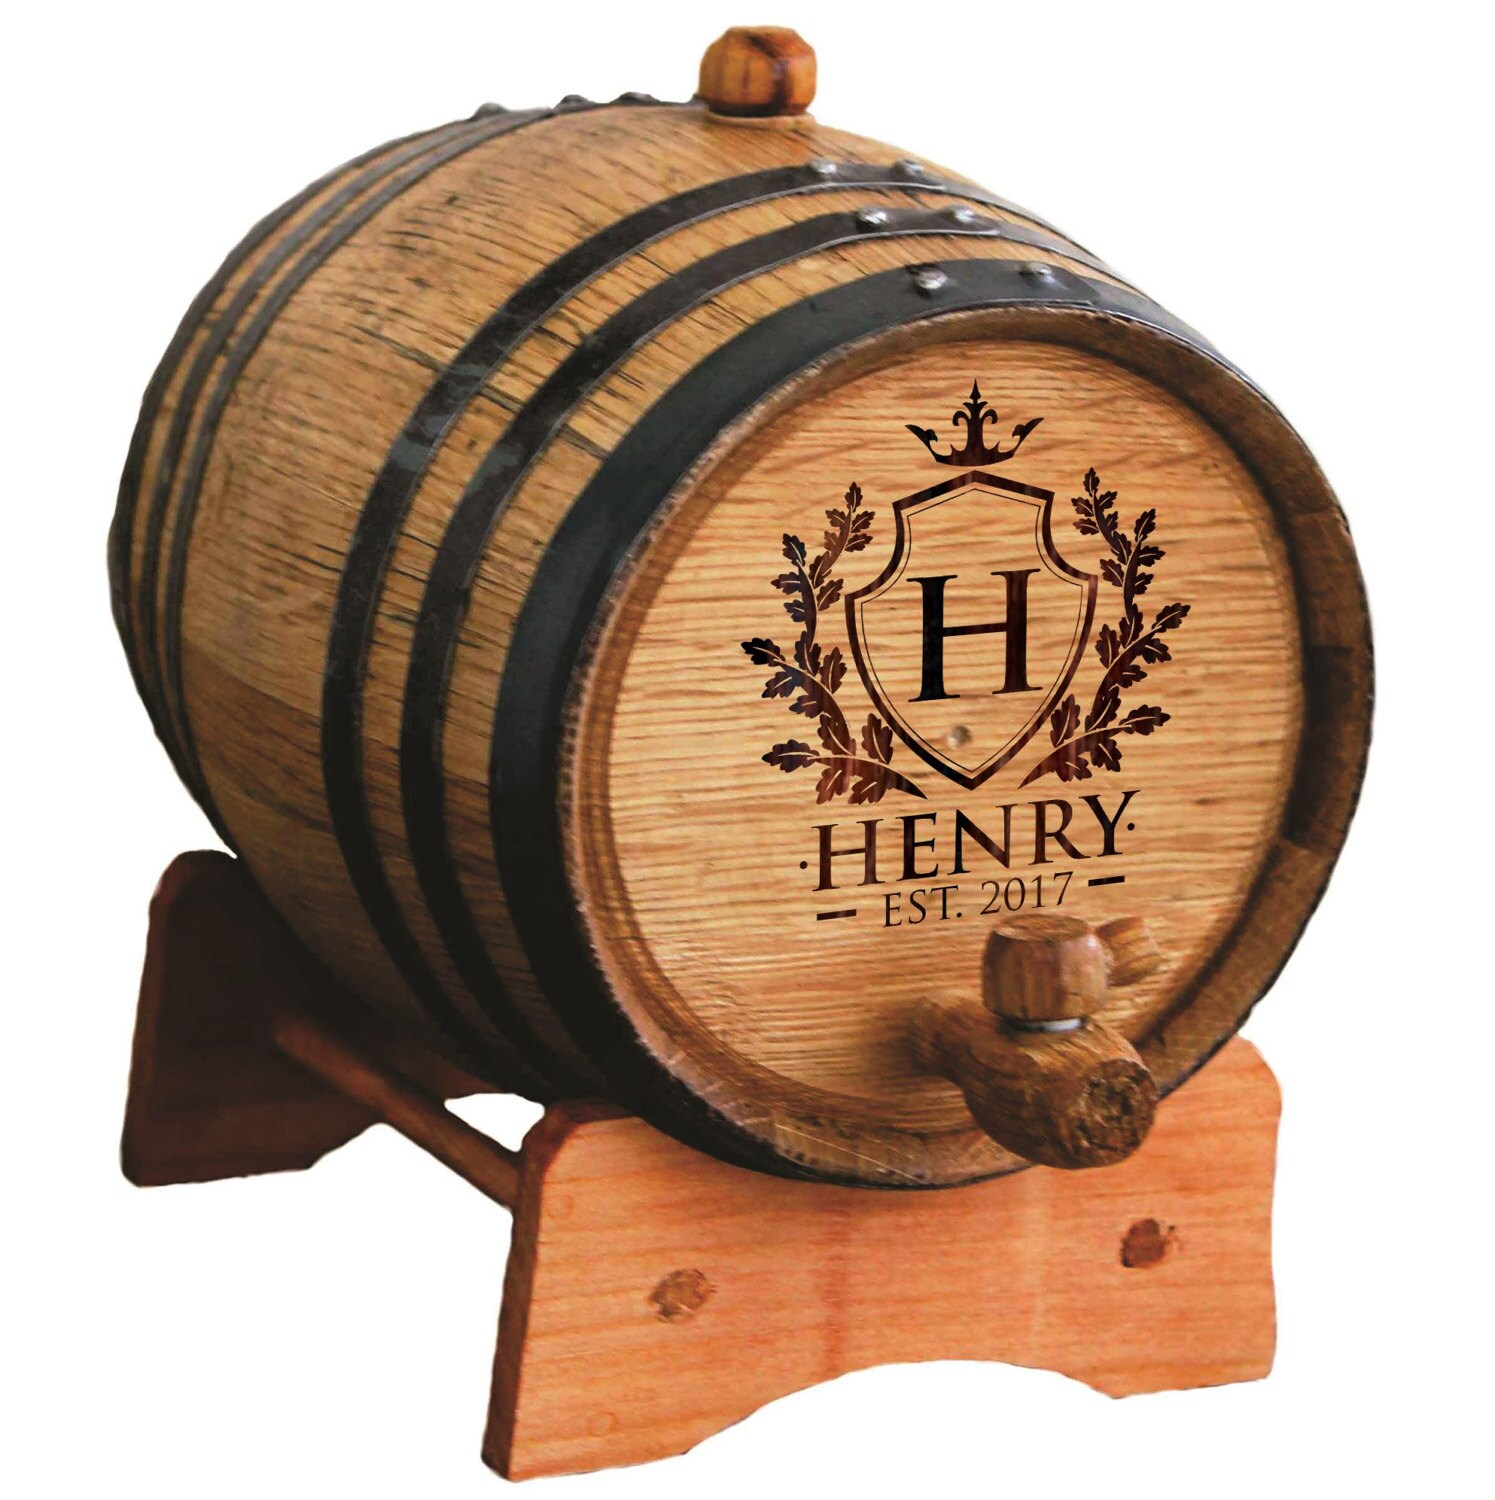 Personalized Wine Barrel Bourbon Barrel Whiskey Barrel image 3